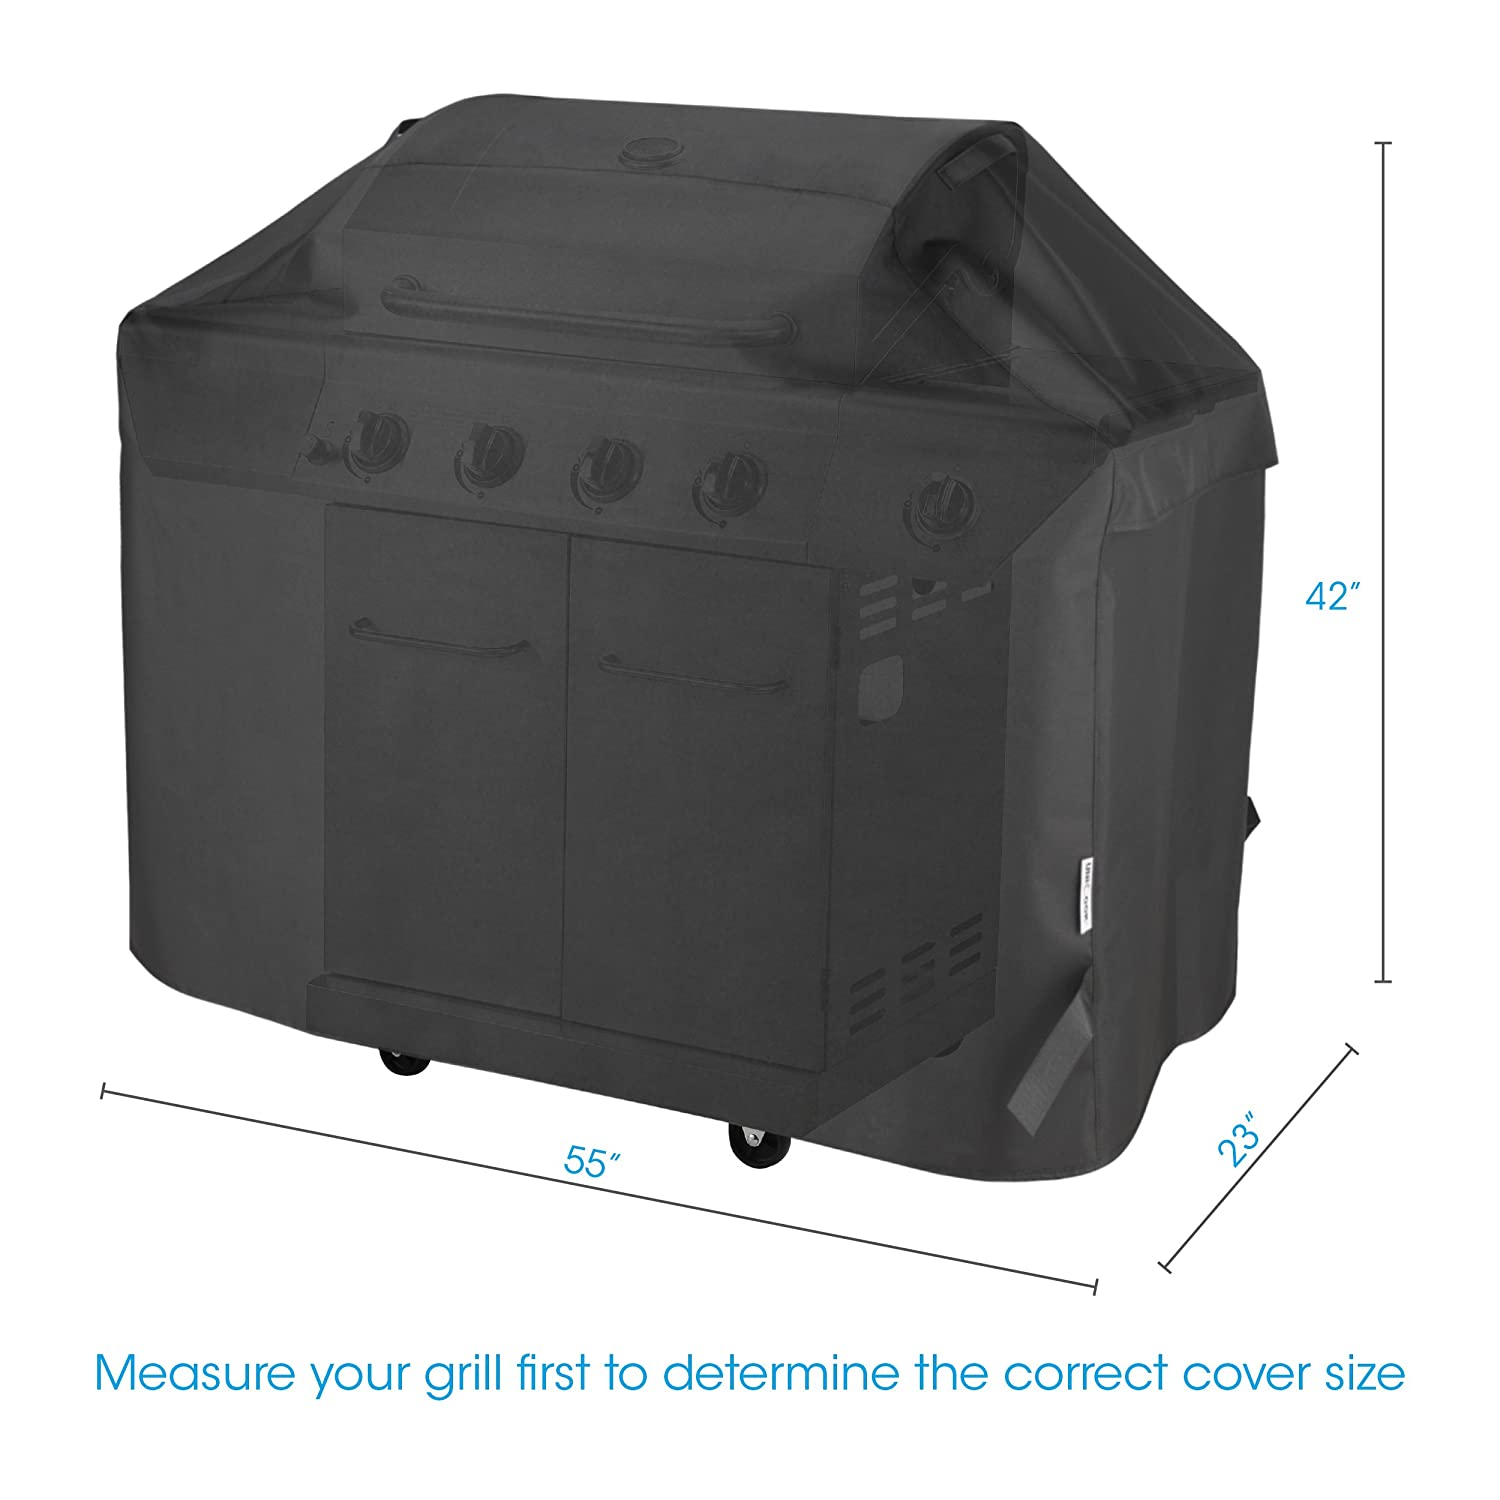 Unicook Heavy Duty Waterproof Barbecue Gas Grill Cover, 55-inch BBQ Cover, Special Fade and UV Resistant Material,Fits Grills of Weber Char-Broil Nexgrill Brinkmann and More Homepro Manufacturing